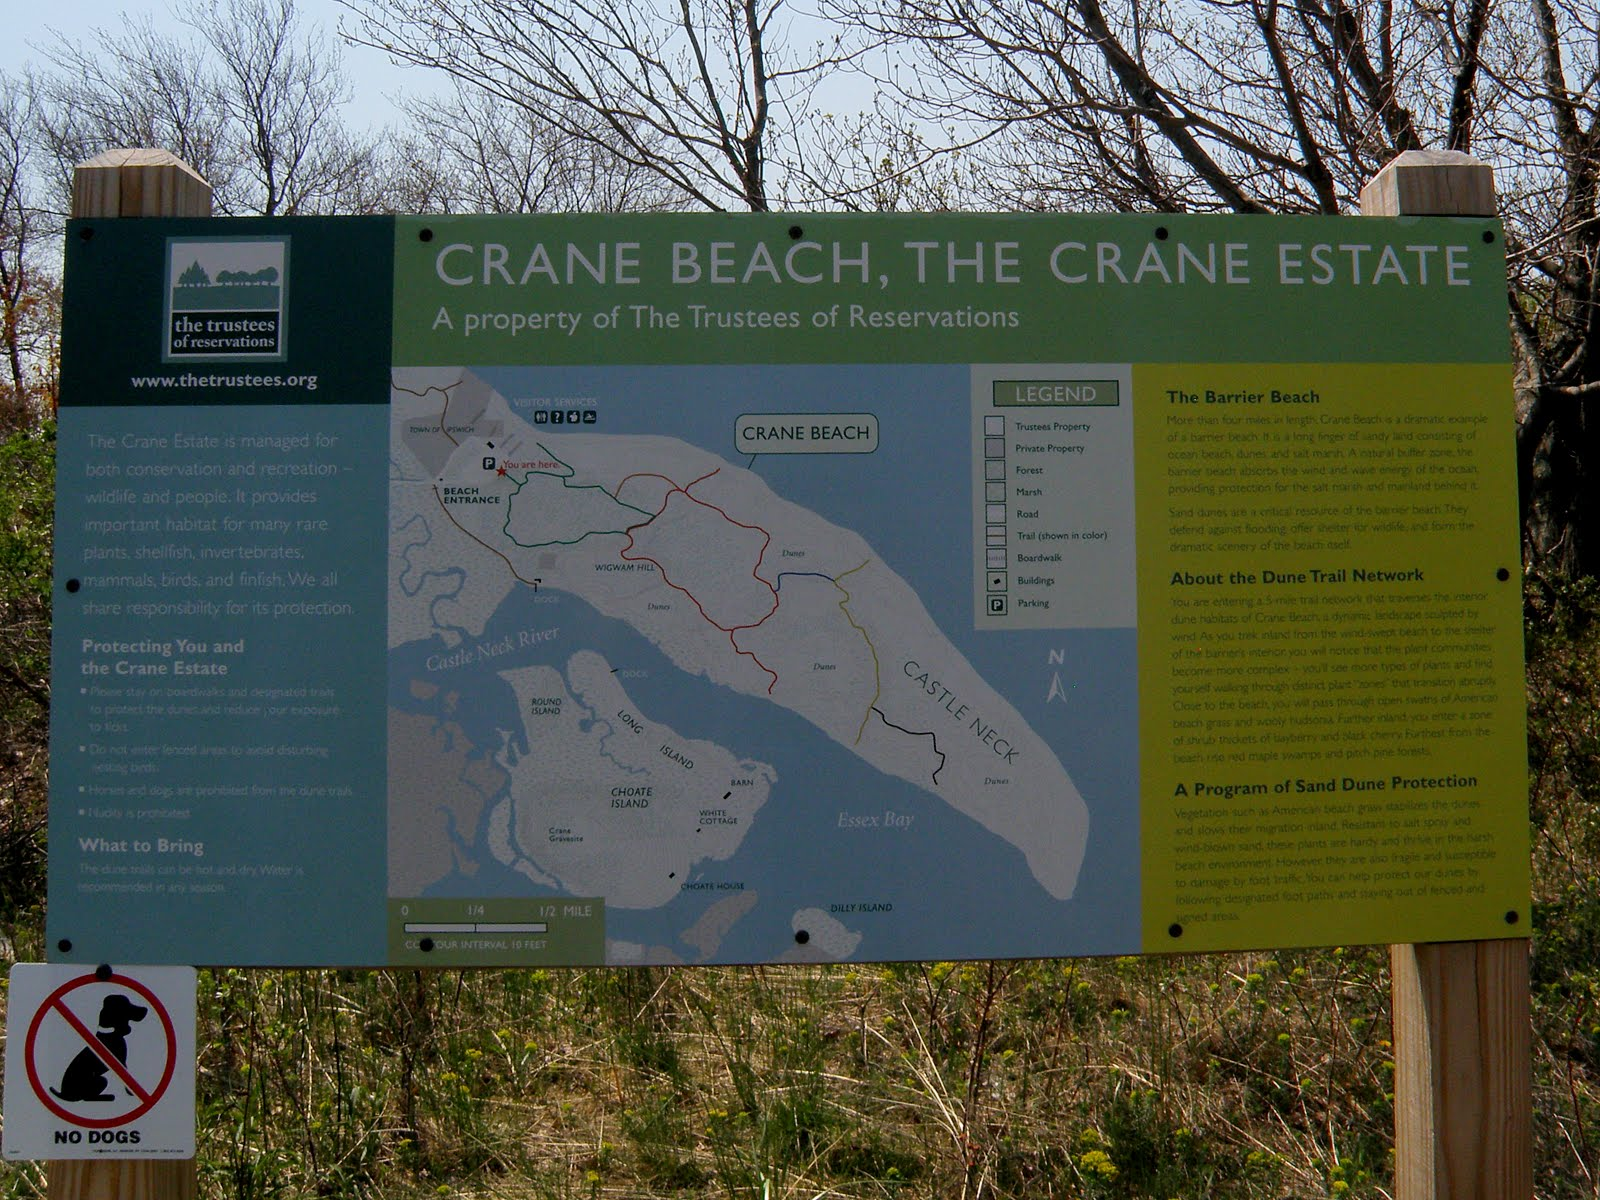 There Are About 5 Miles Of Trails In The Crane Beach Estate They Wind Through Dunes And Protected Wildlife Areas